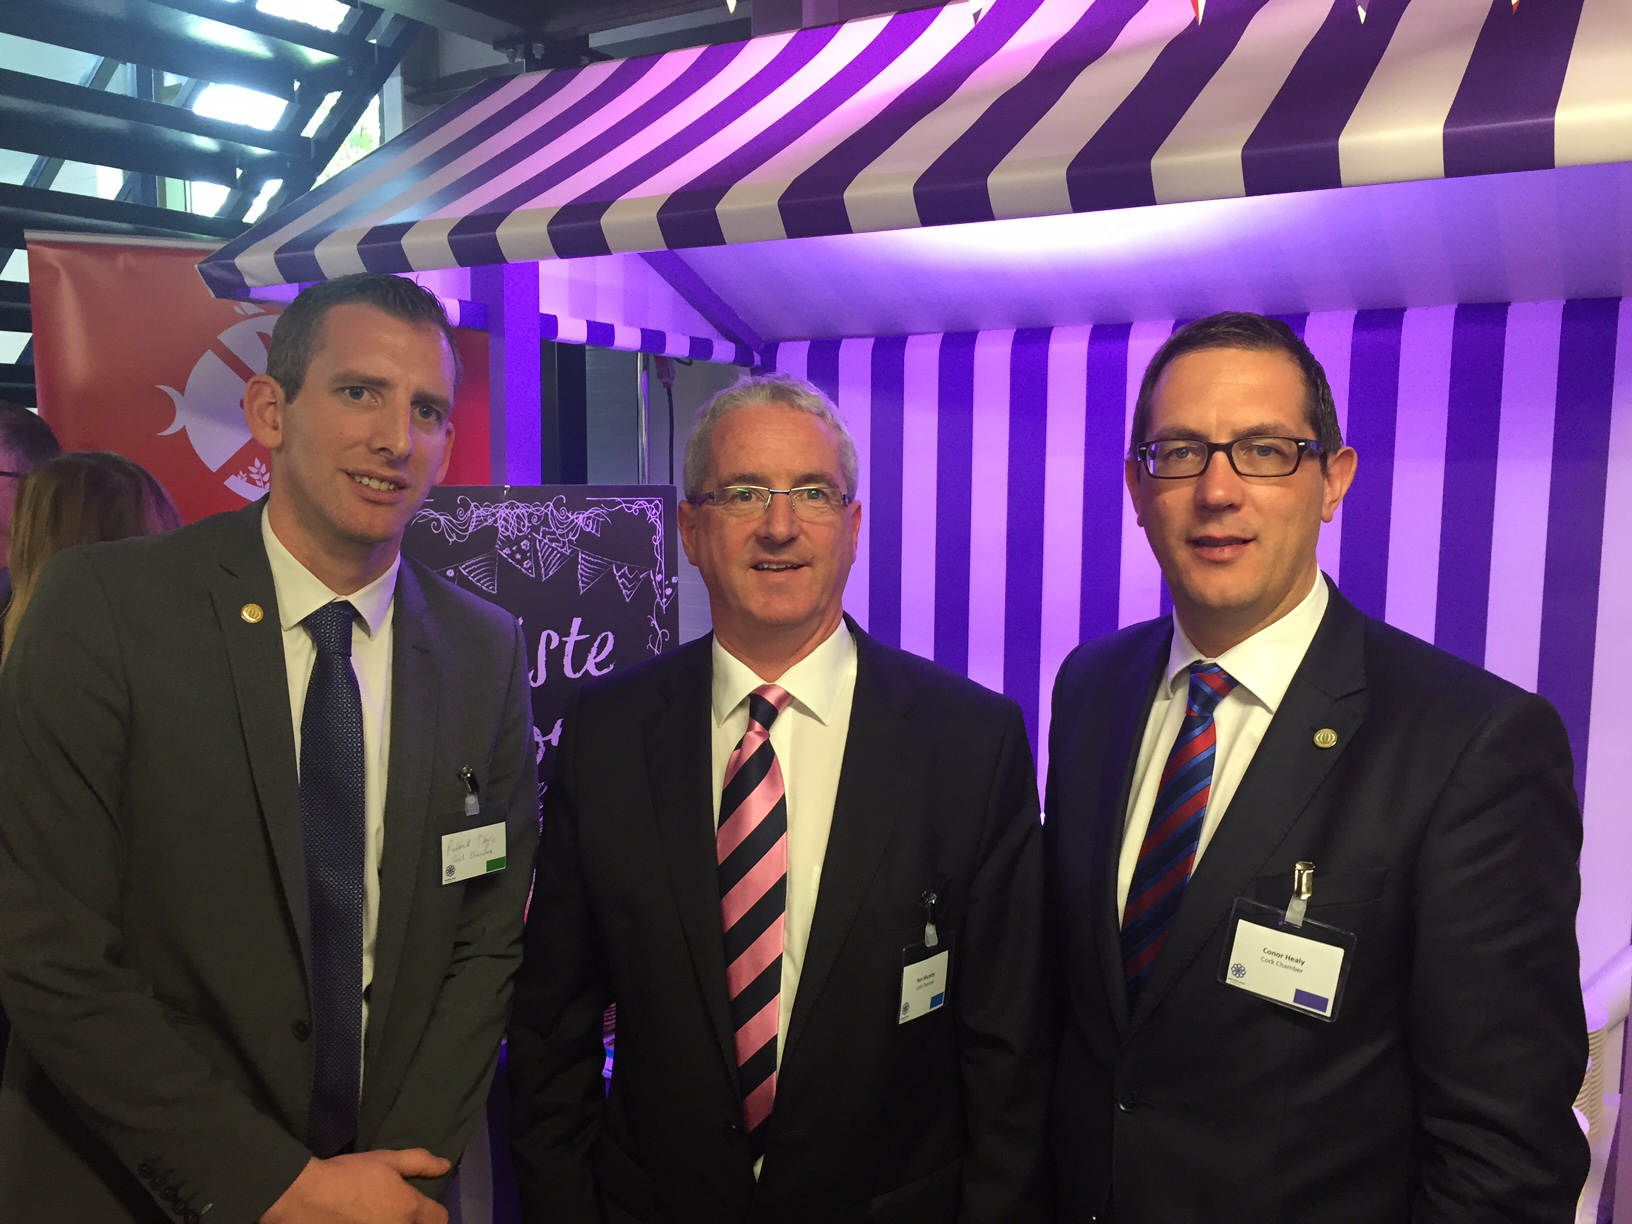 Pictured: Patrick Doyle (Cork Chamber Membership Manager), Ken Murphy (Director CareerWise) and Conor Healy (CEO Cork Chamber)